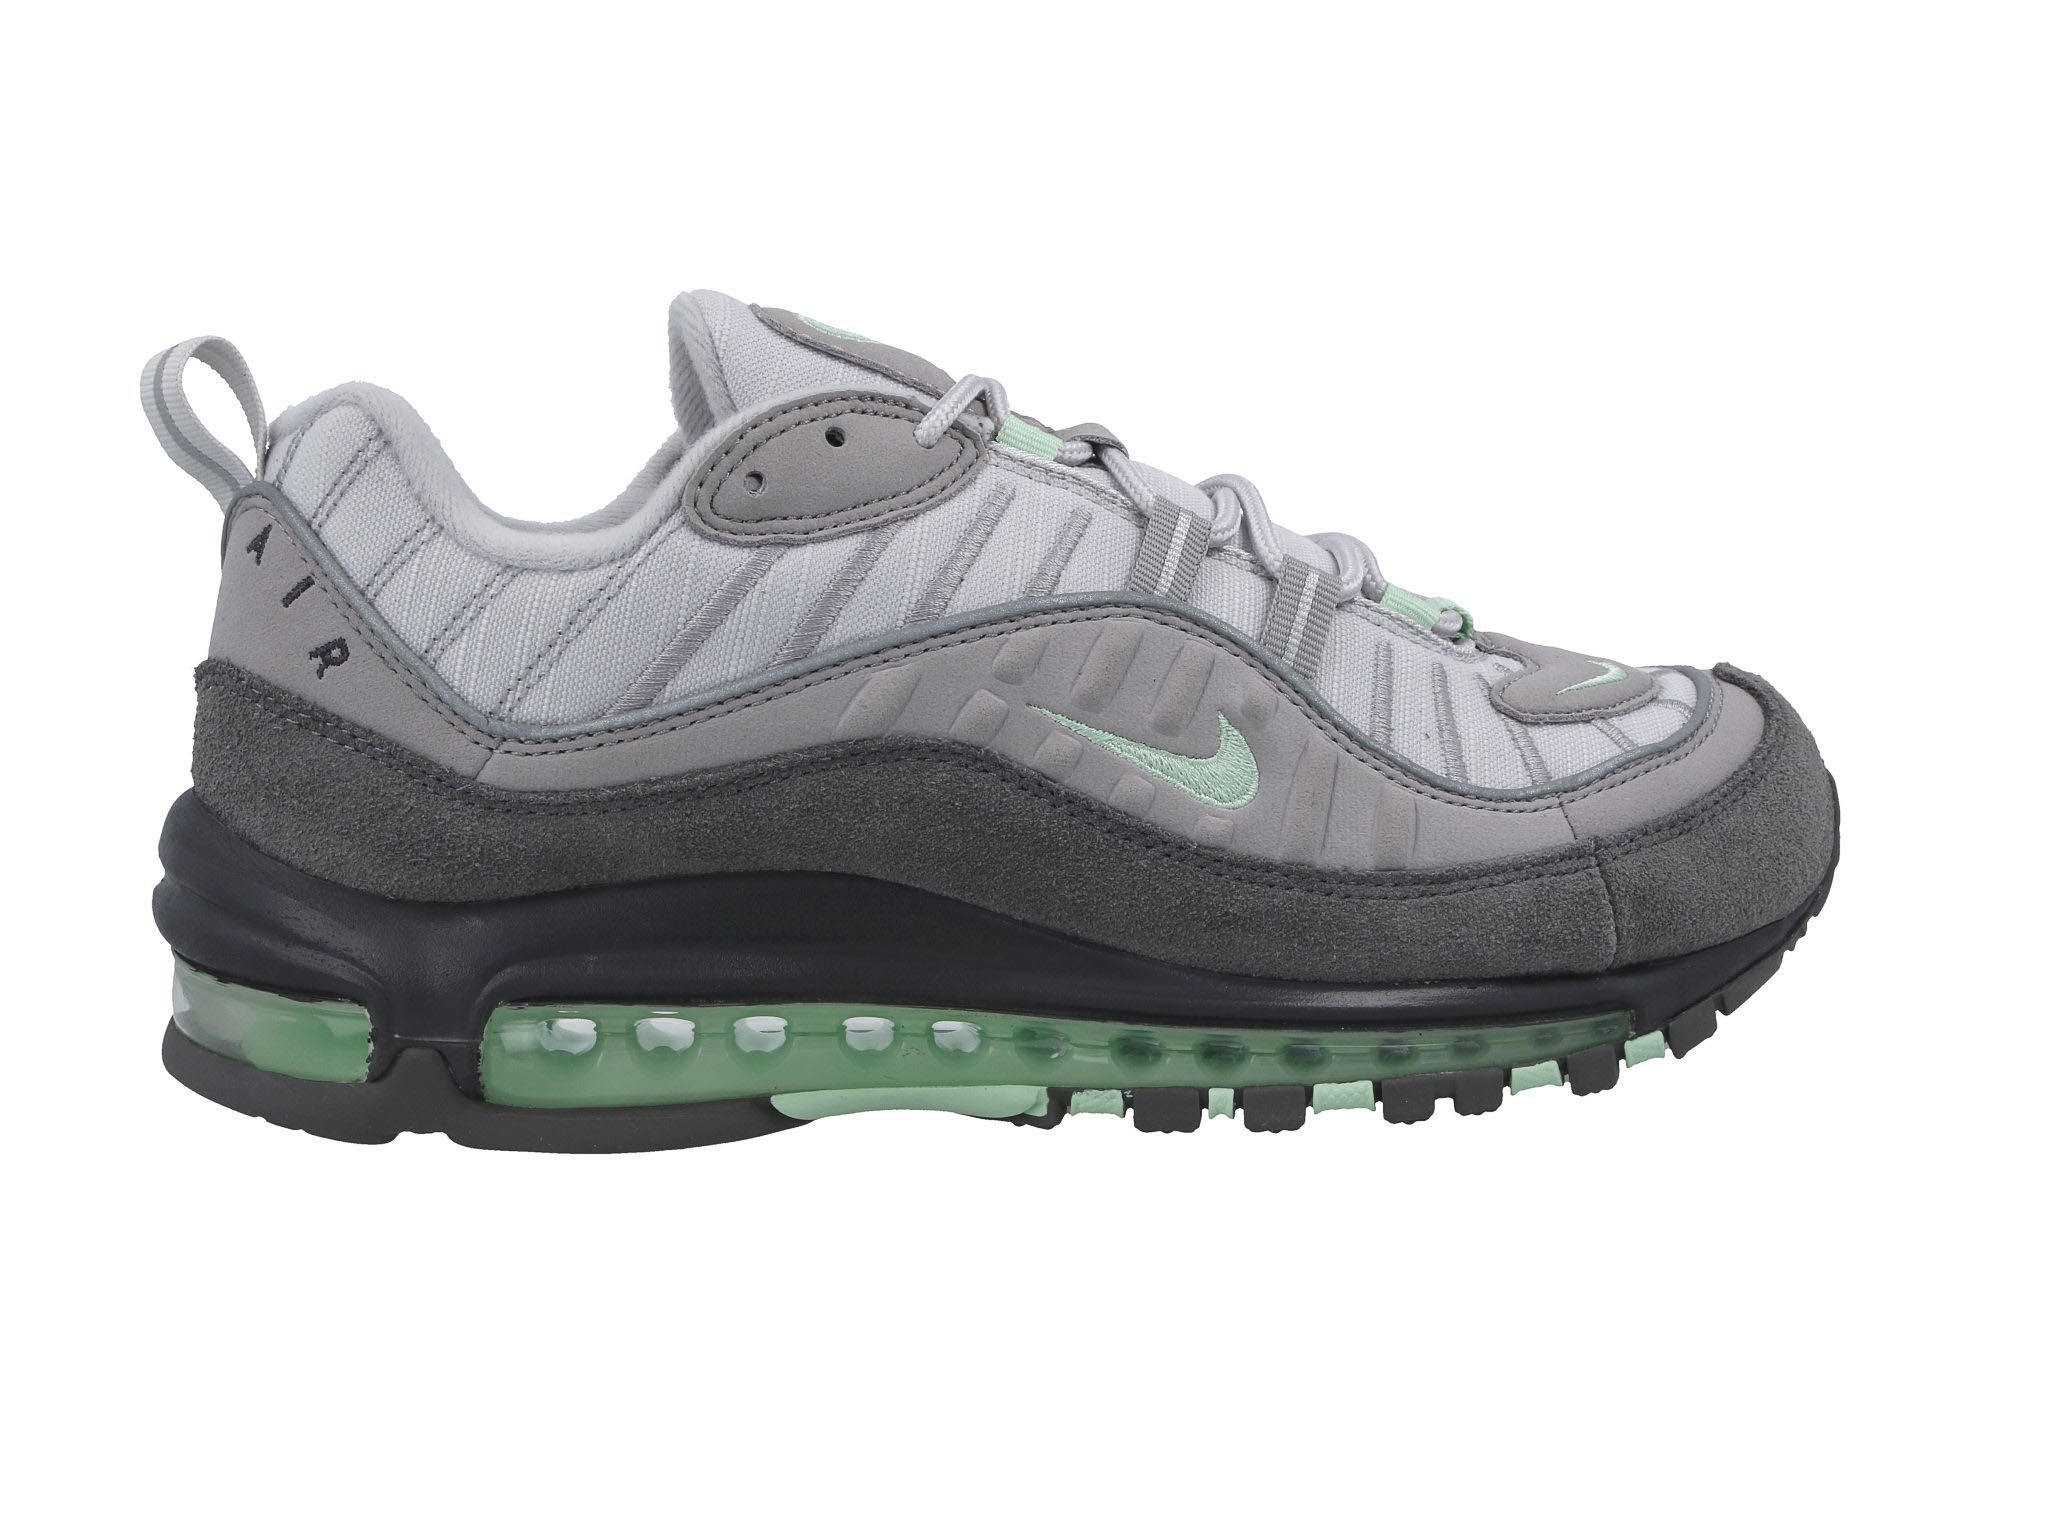 Nike Air Max 98 Vast Grey 640744 011 Release Info